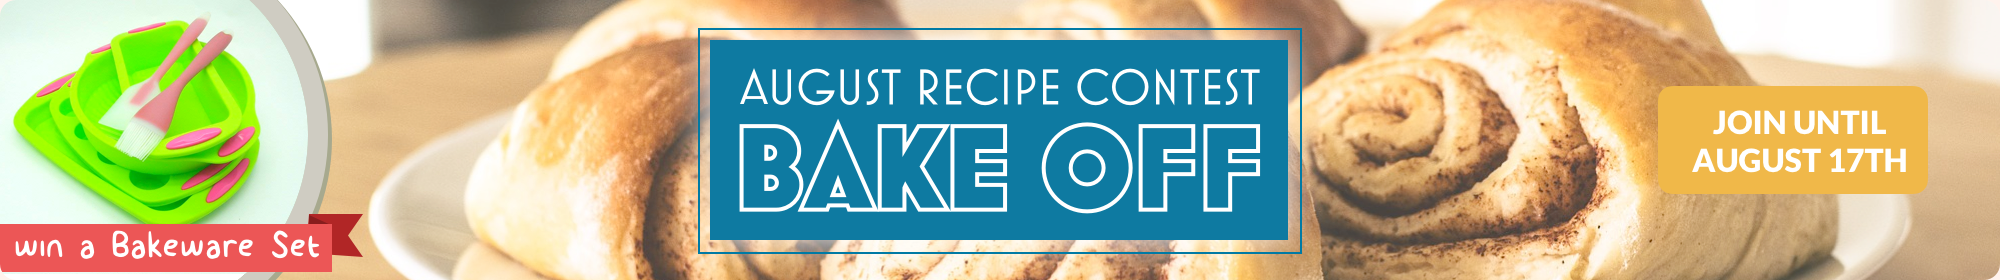 August Bake Off Recipe Contest